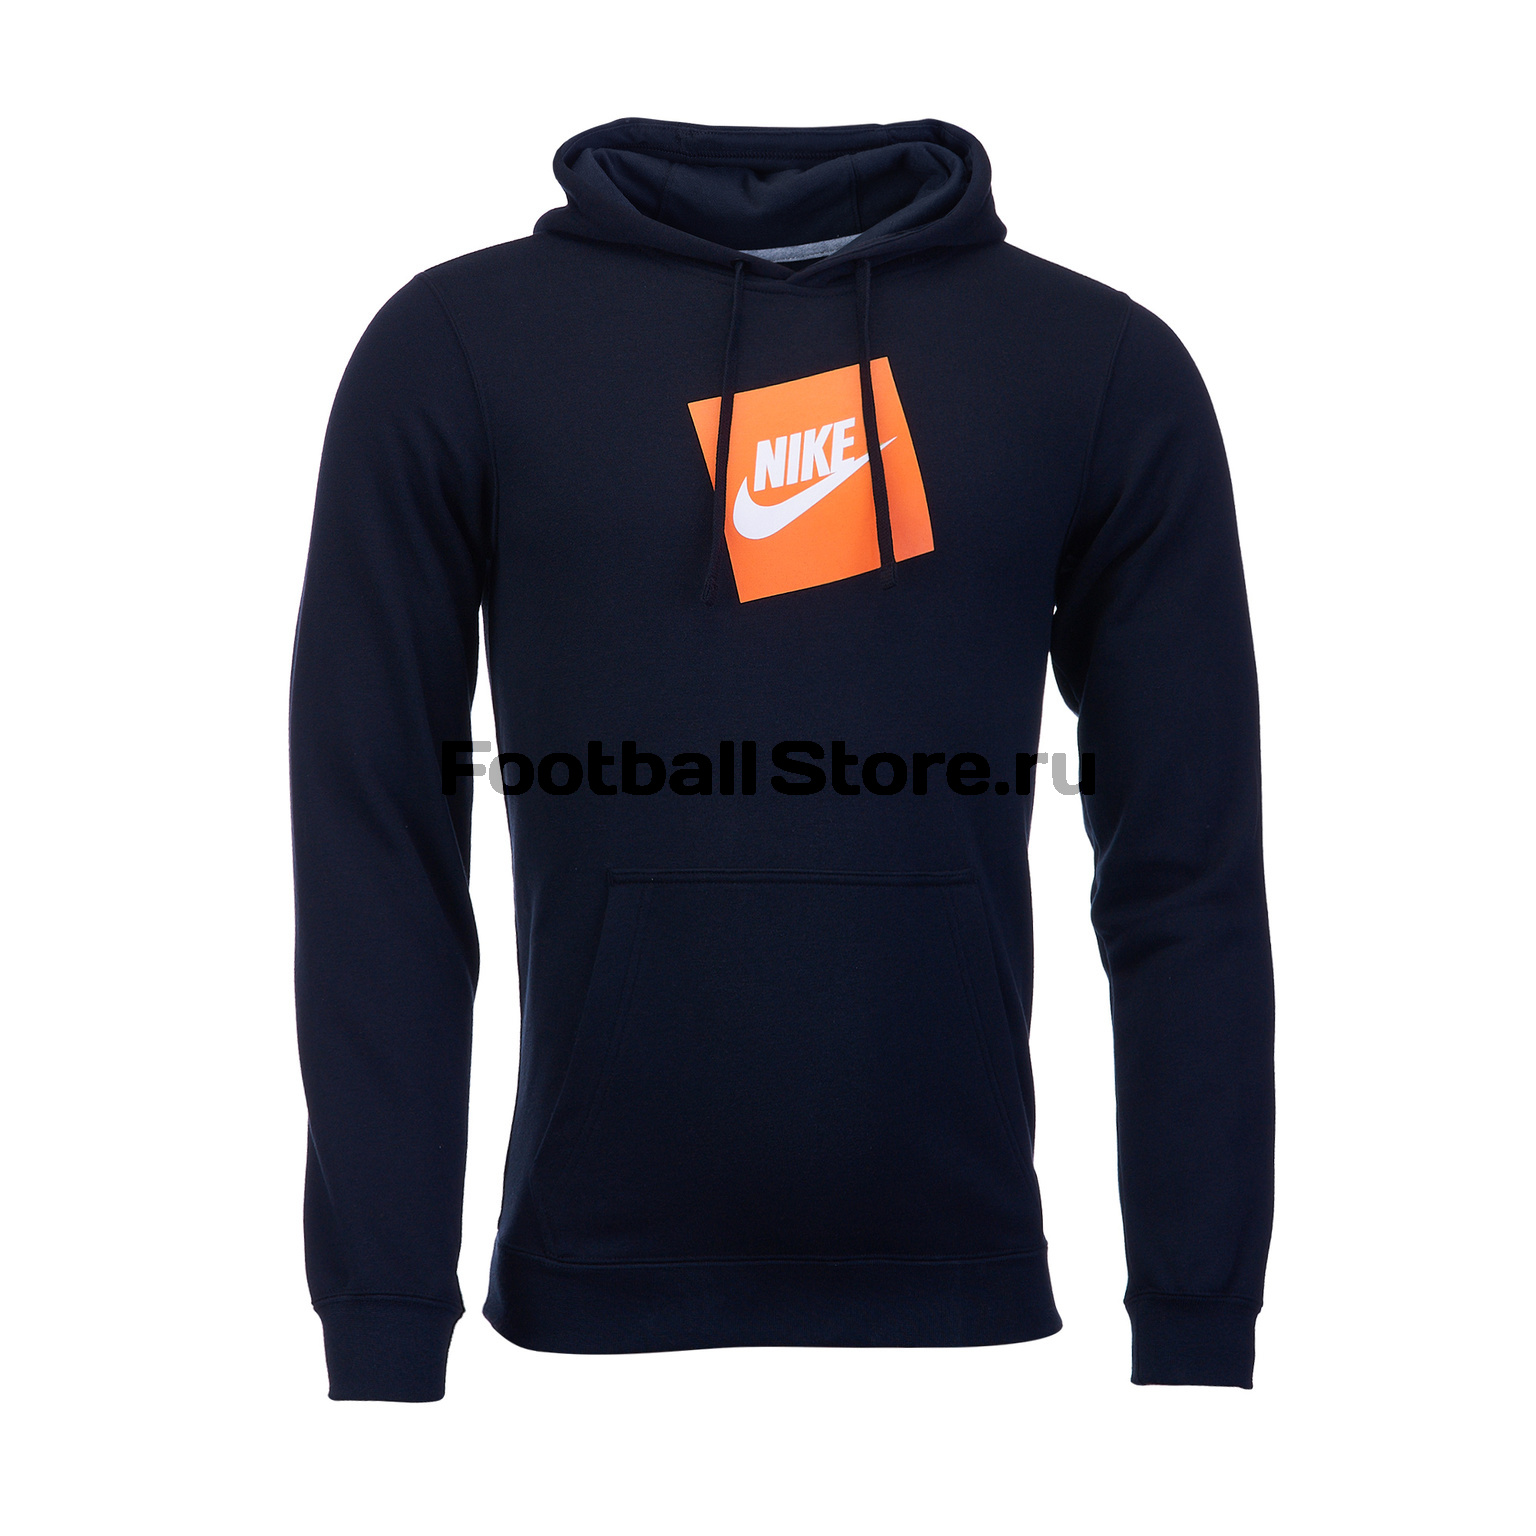 Толстовка Nike Sportswear Hoodie 928719-010 quying laptop lcd screen compatible model nt116whm n10 n116bge l41 n116bge l42 n116bge lb1 b116xw01 v 0 11 6 inch slim 40 pin